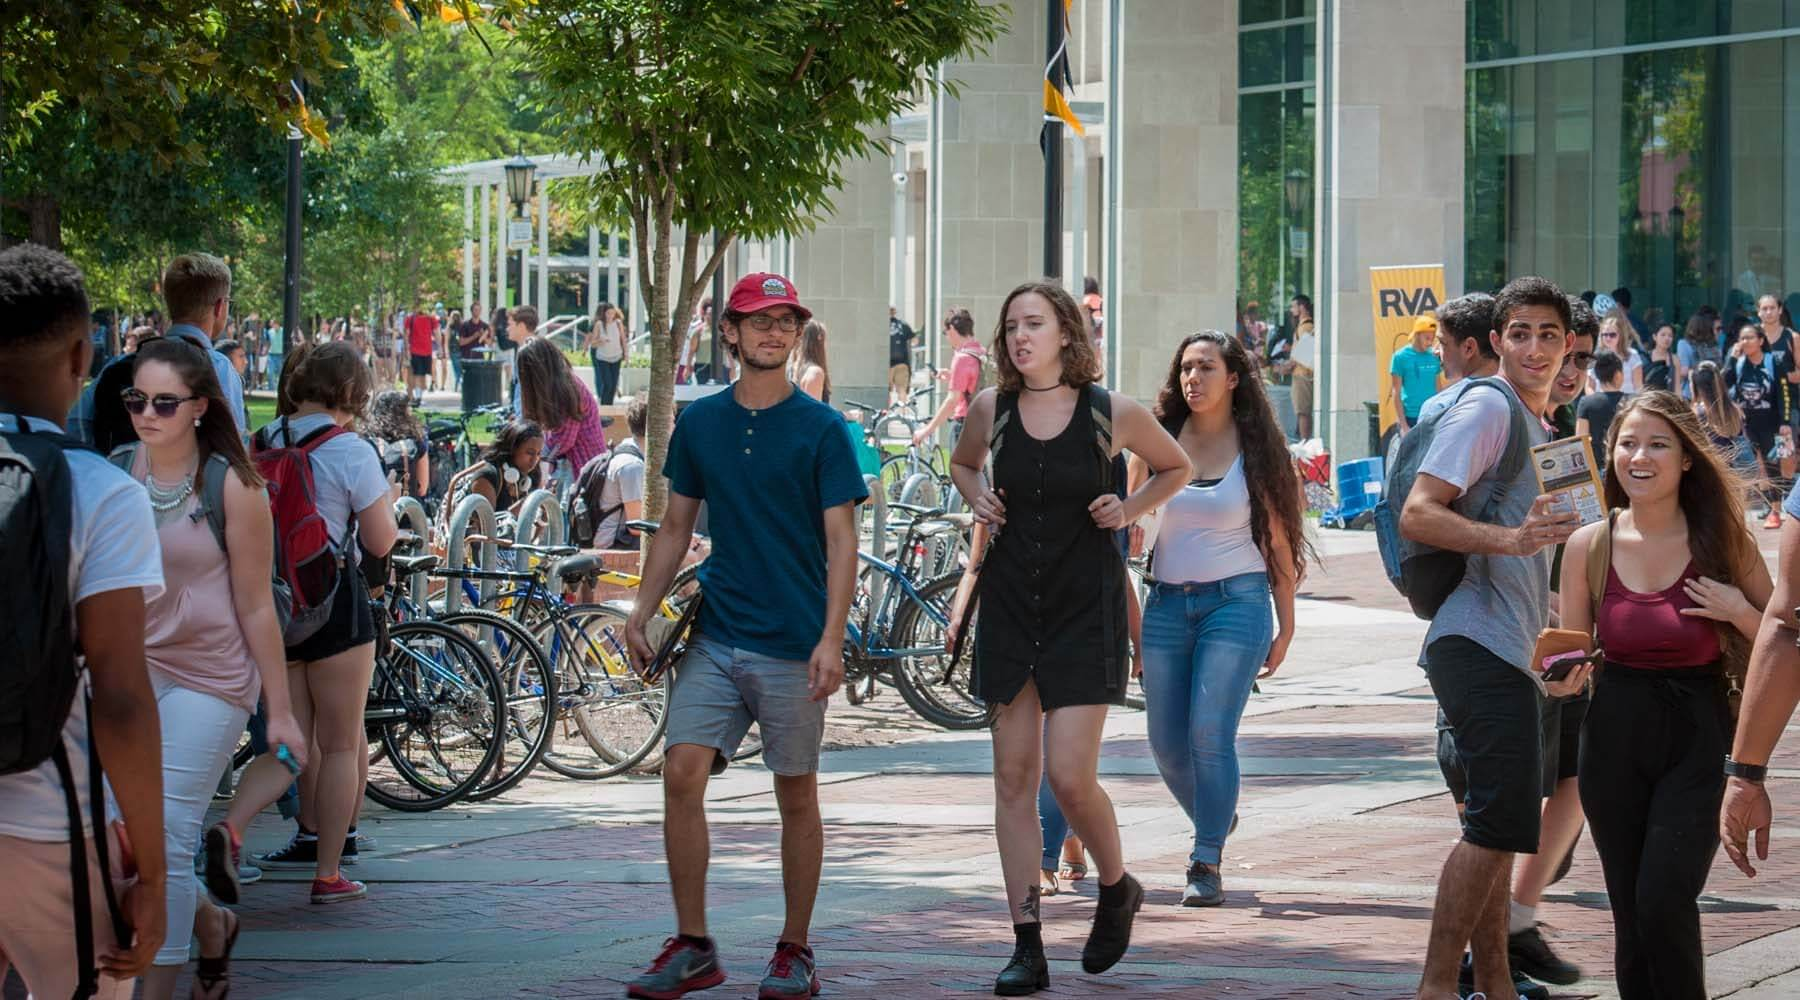 Students walk in front of VCU's Cabell Library